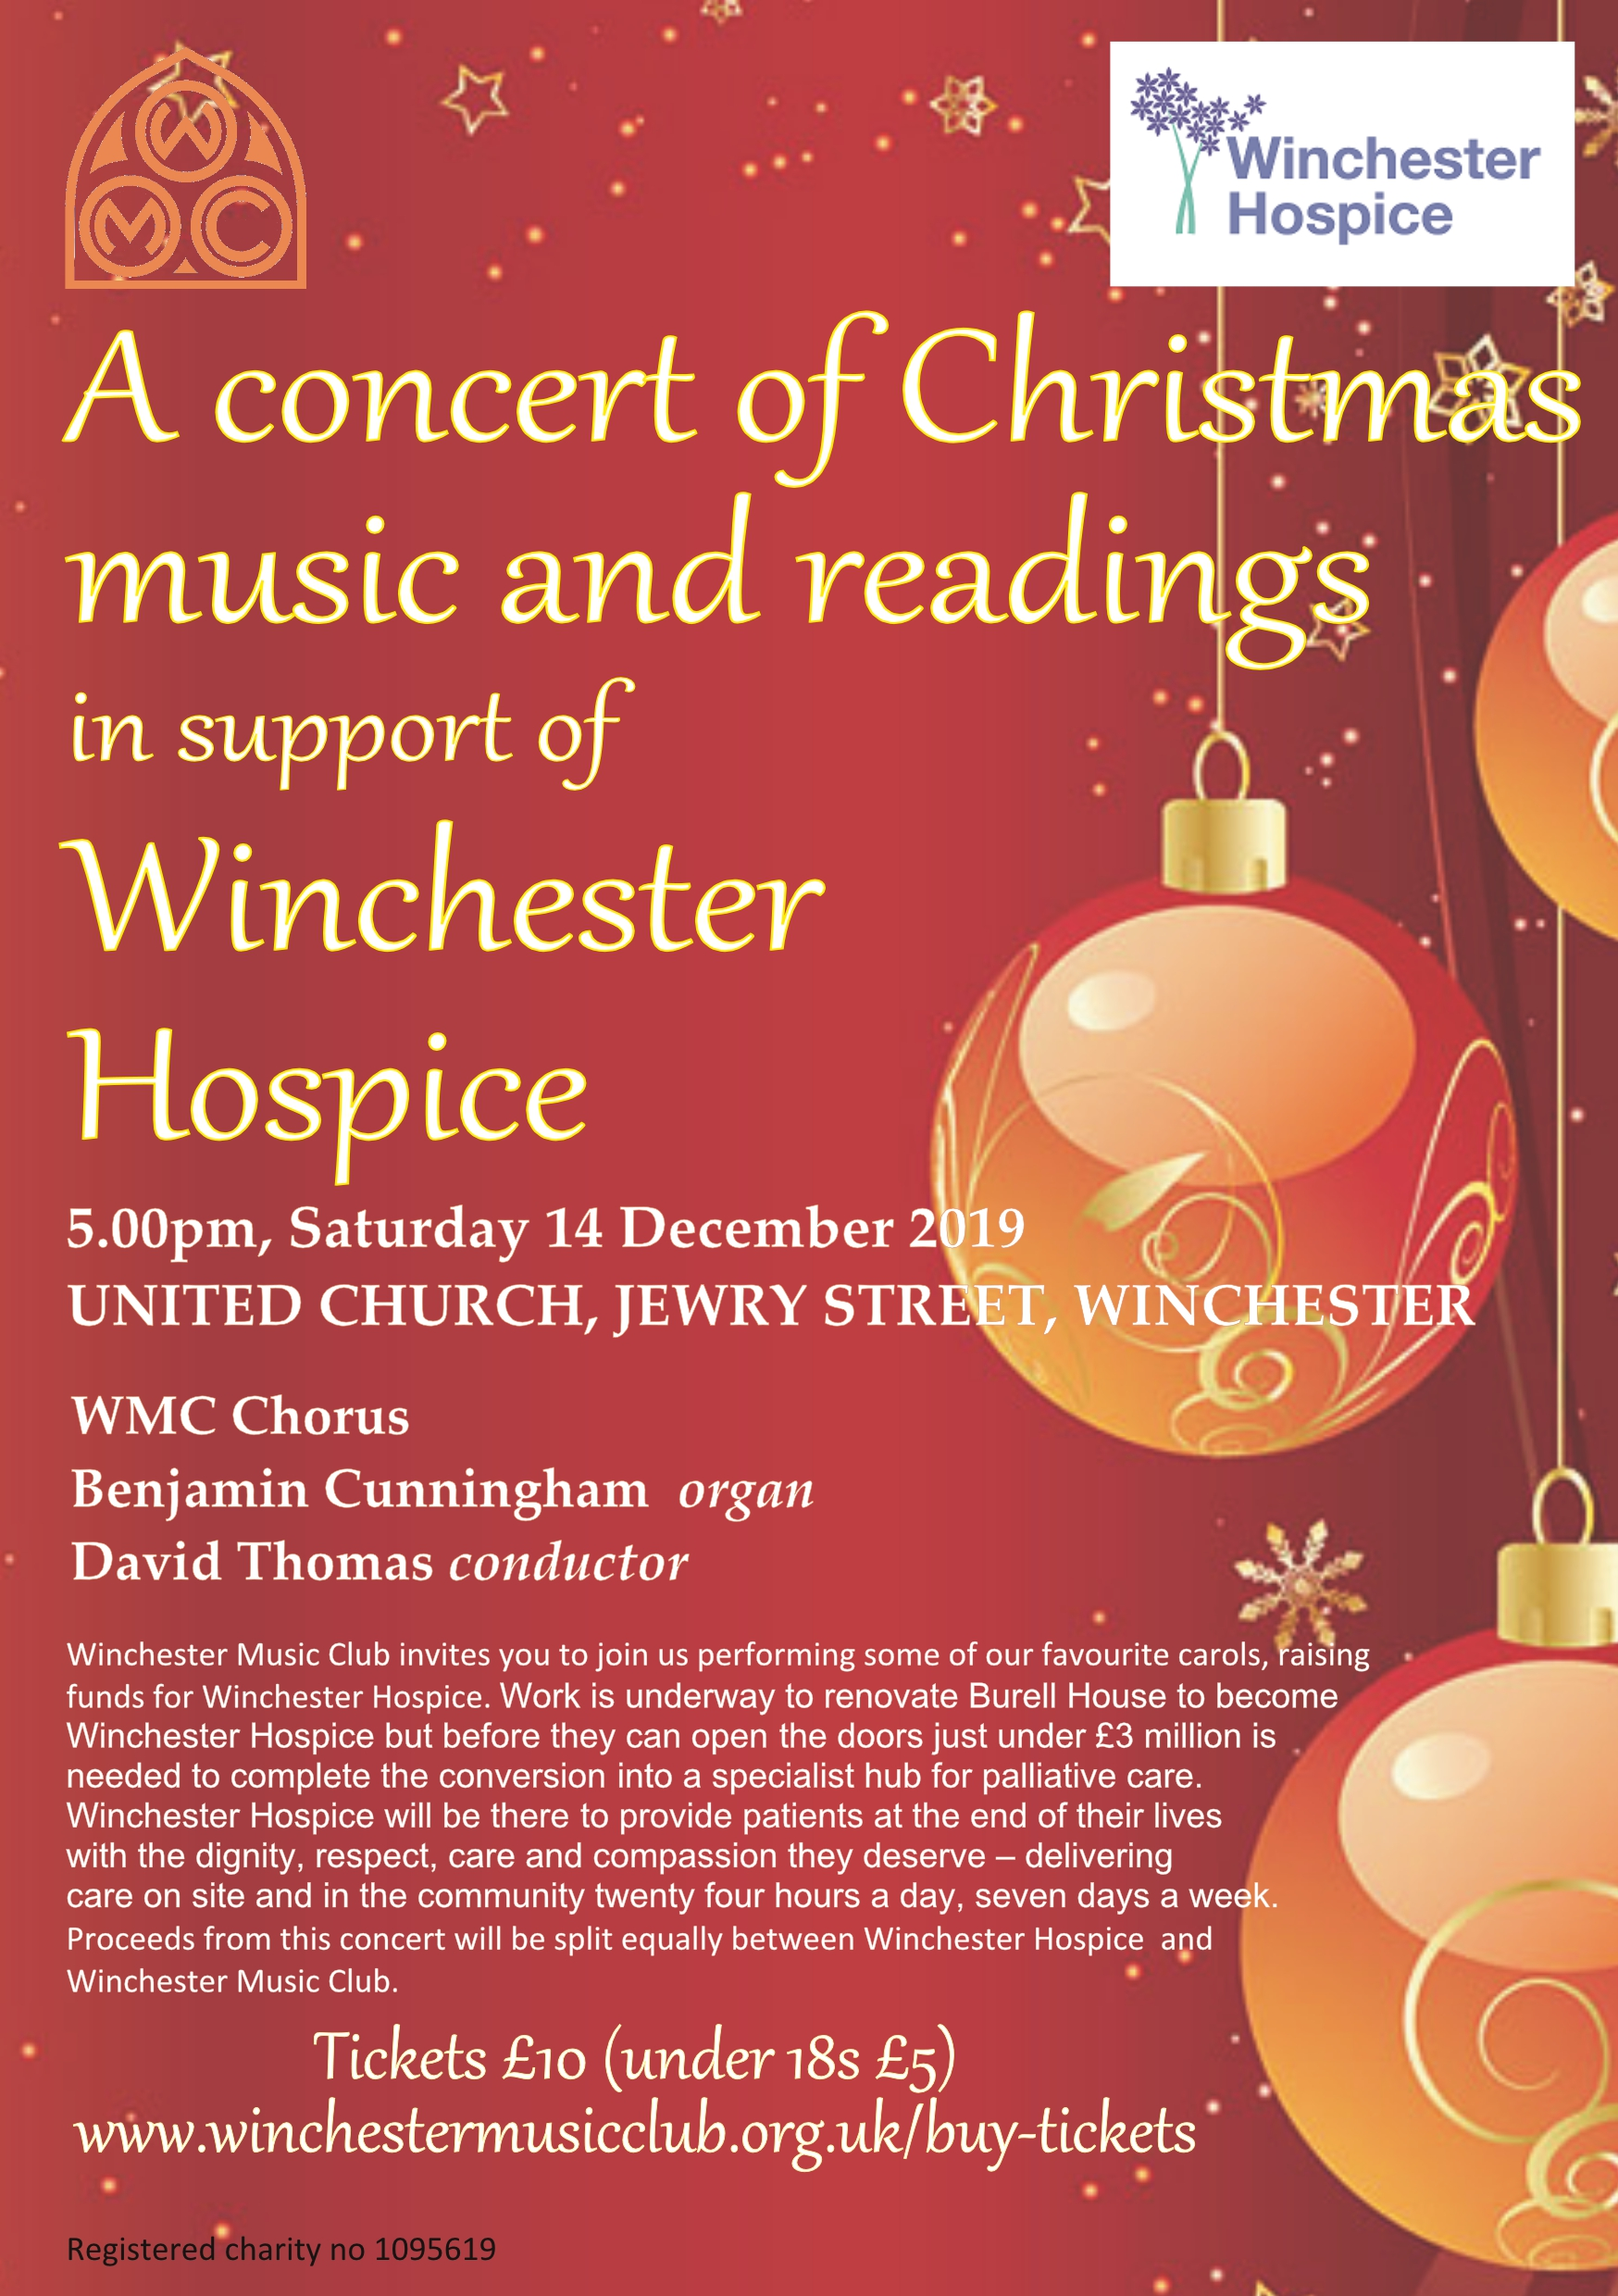 A concert of Christmas music and readings in support of Winchester Hospice